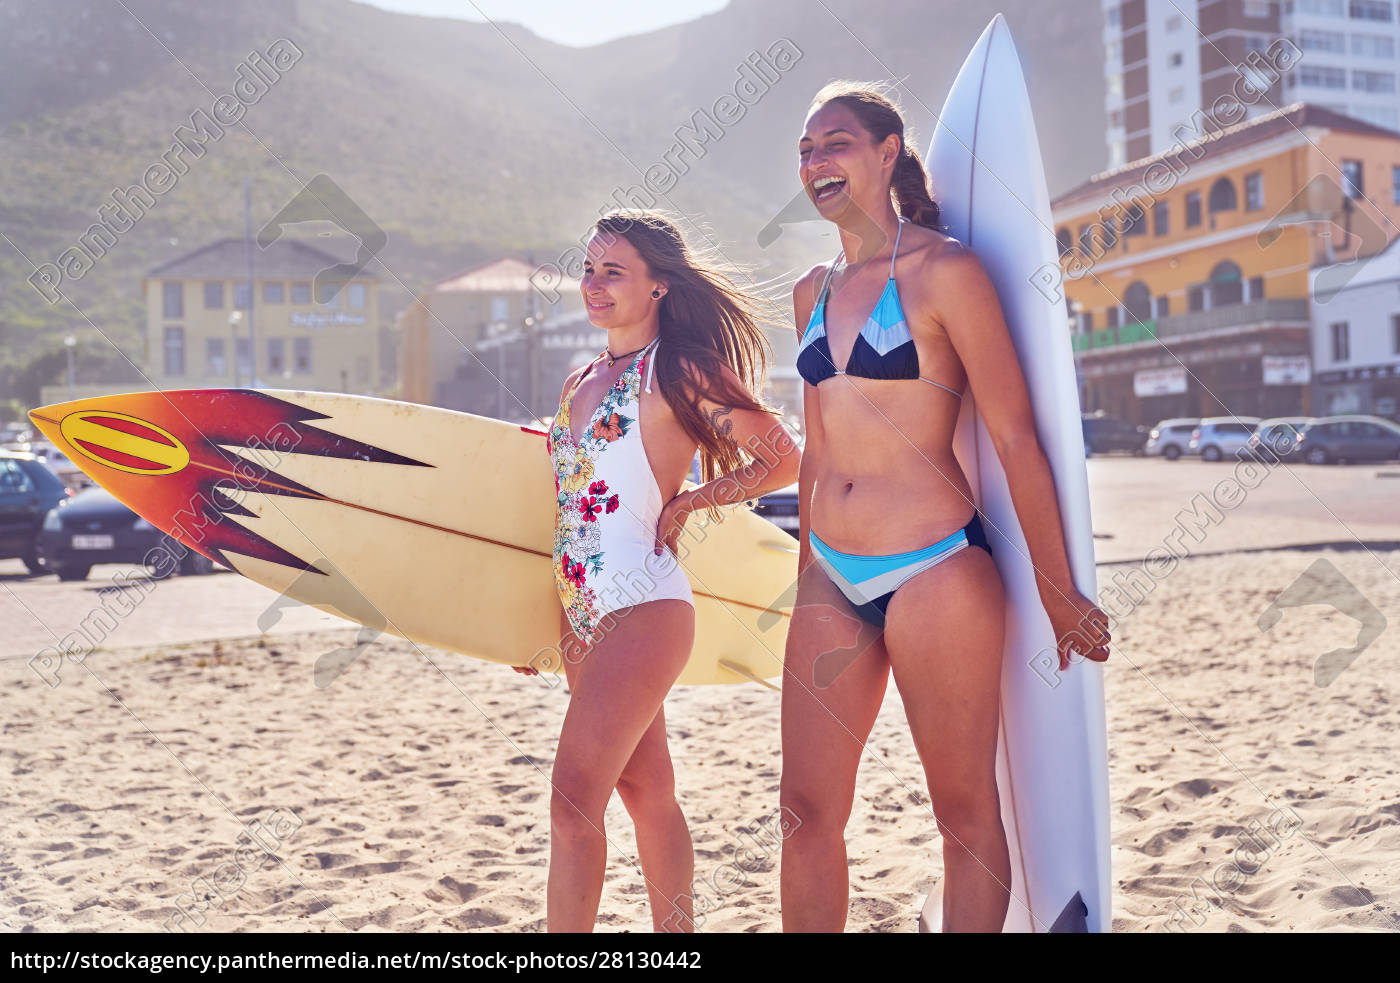 happy, young, female, surfers, with, surfboards - 28130442